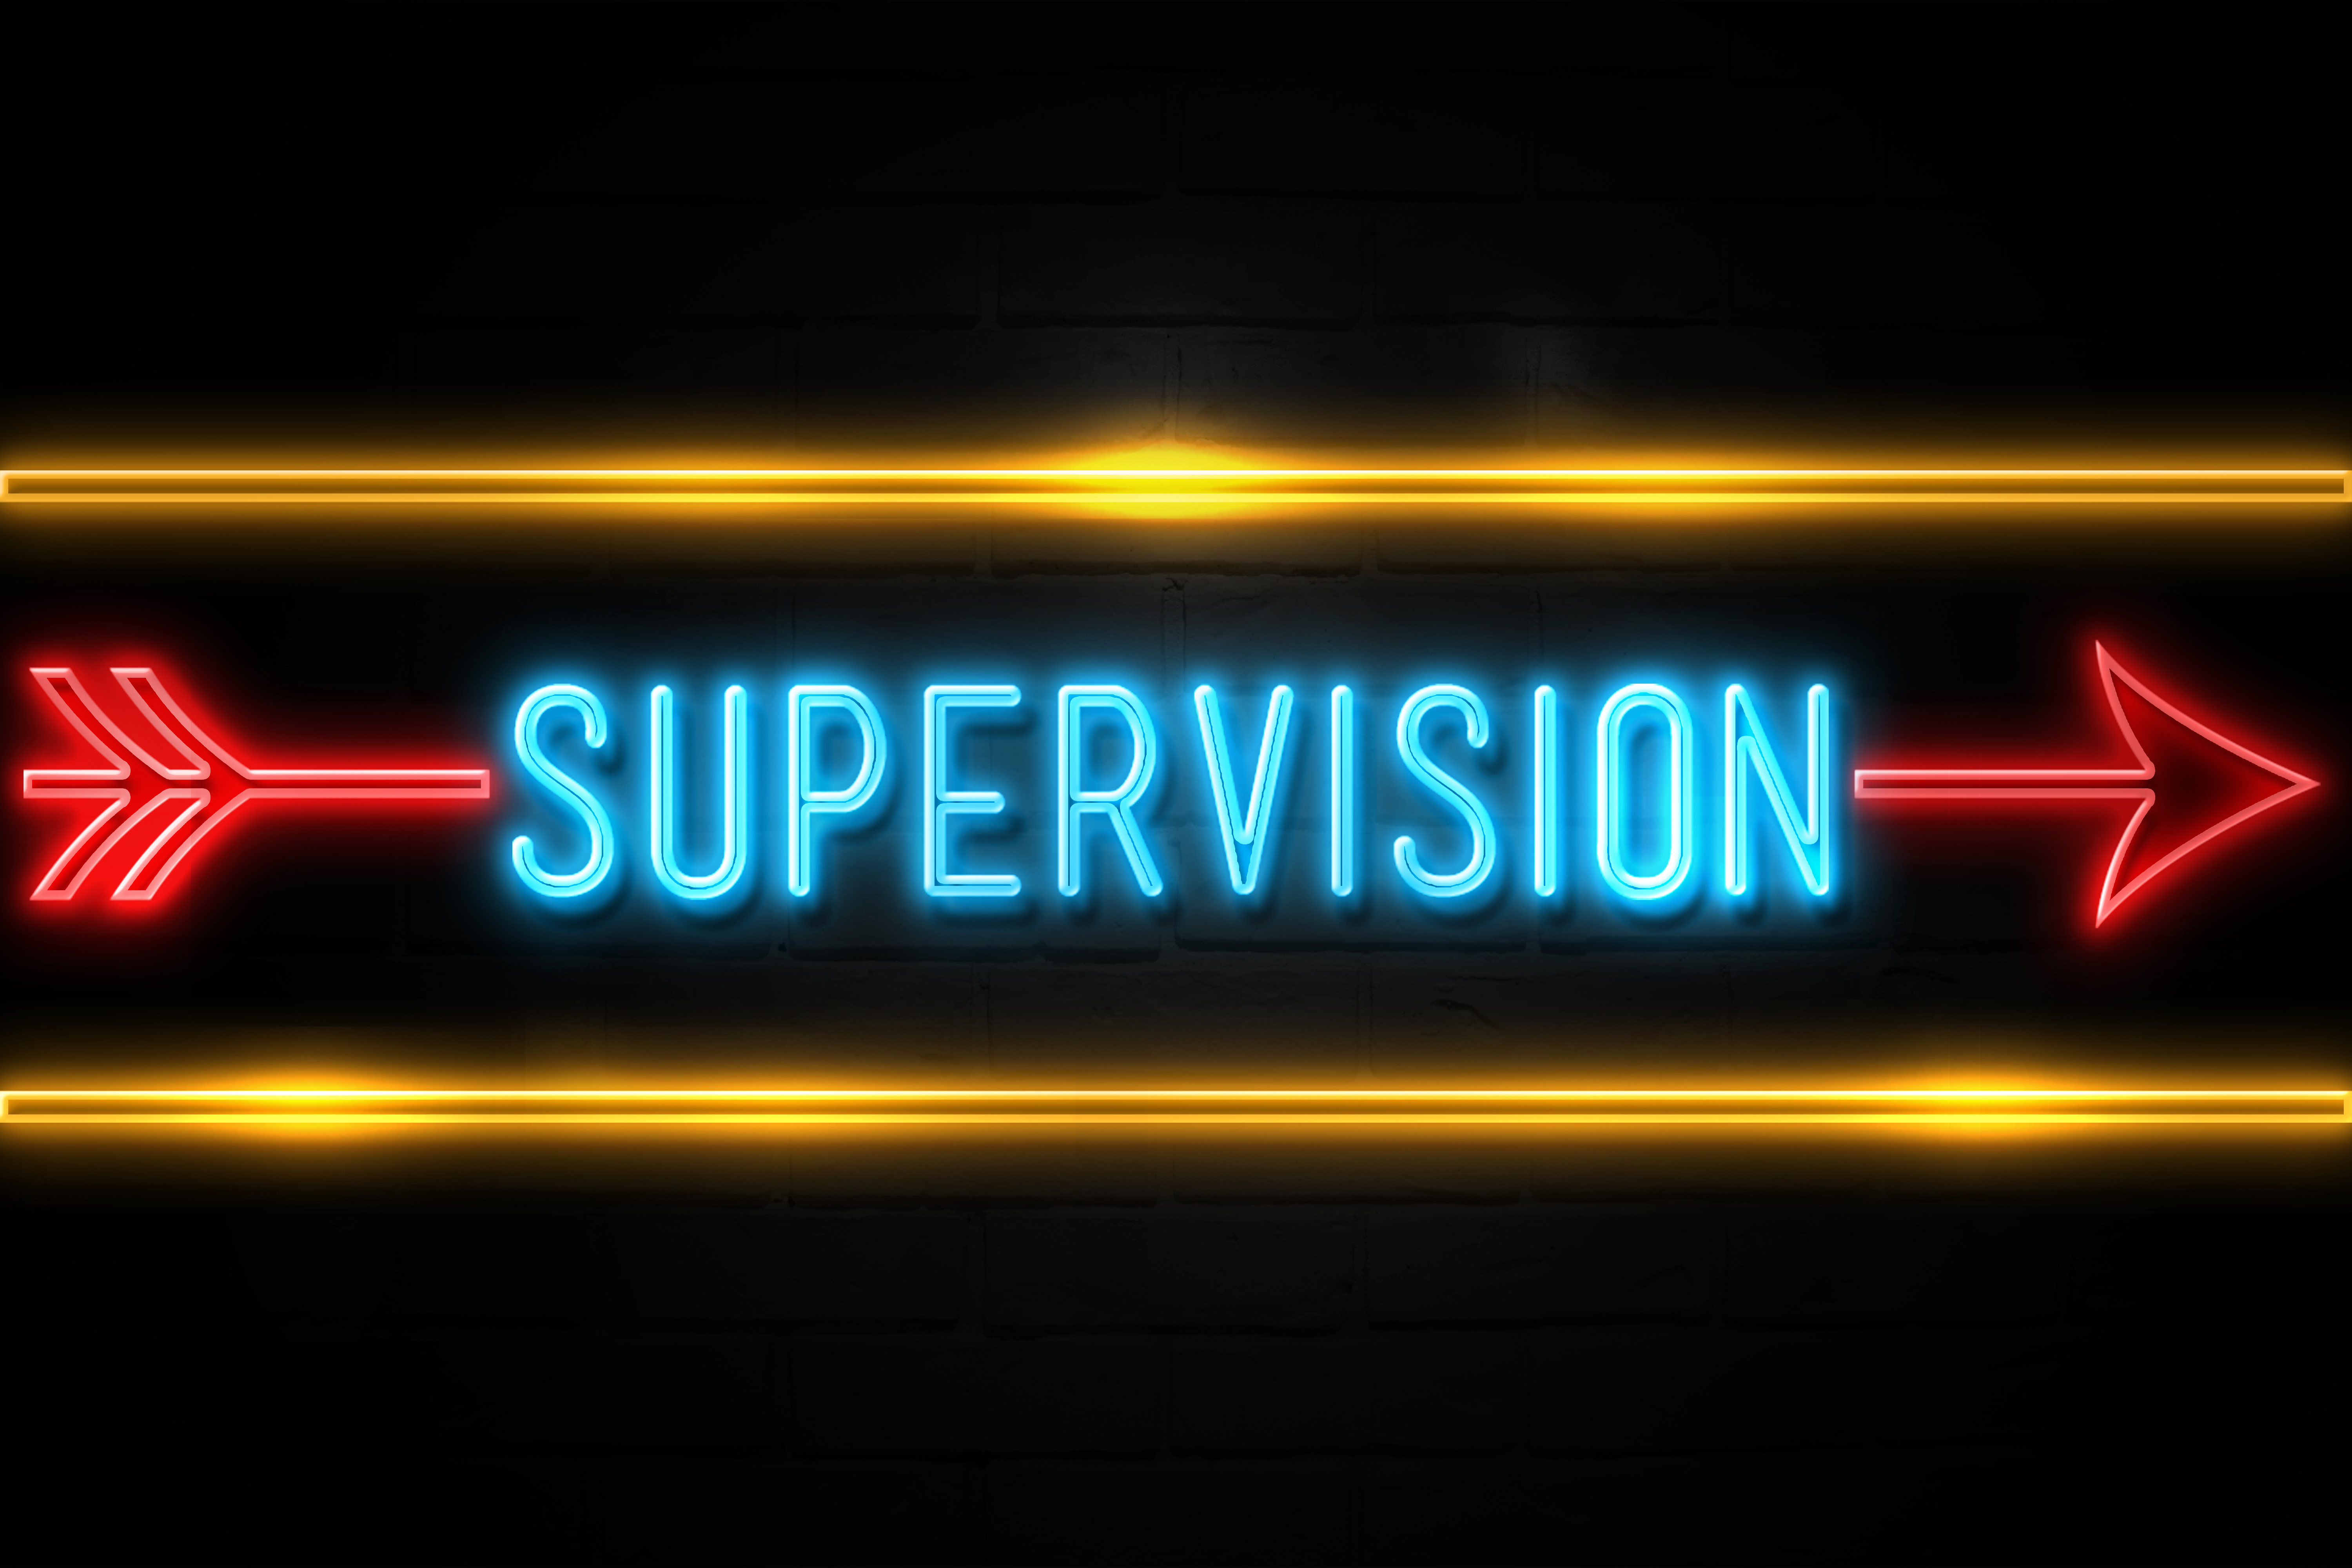 Supervision  - fluorescent Neon Sign on brickwall Front view